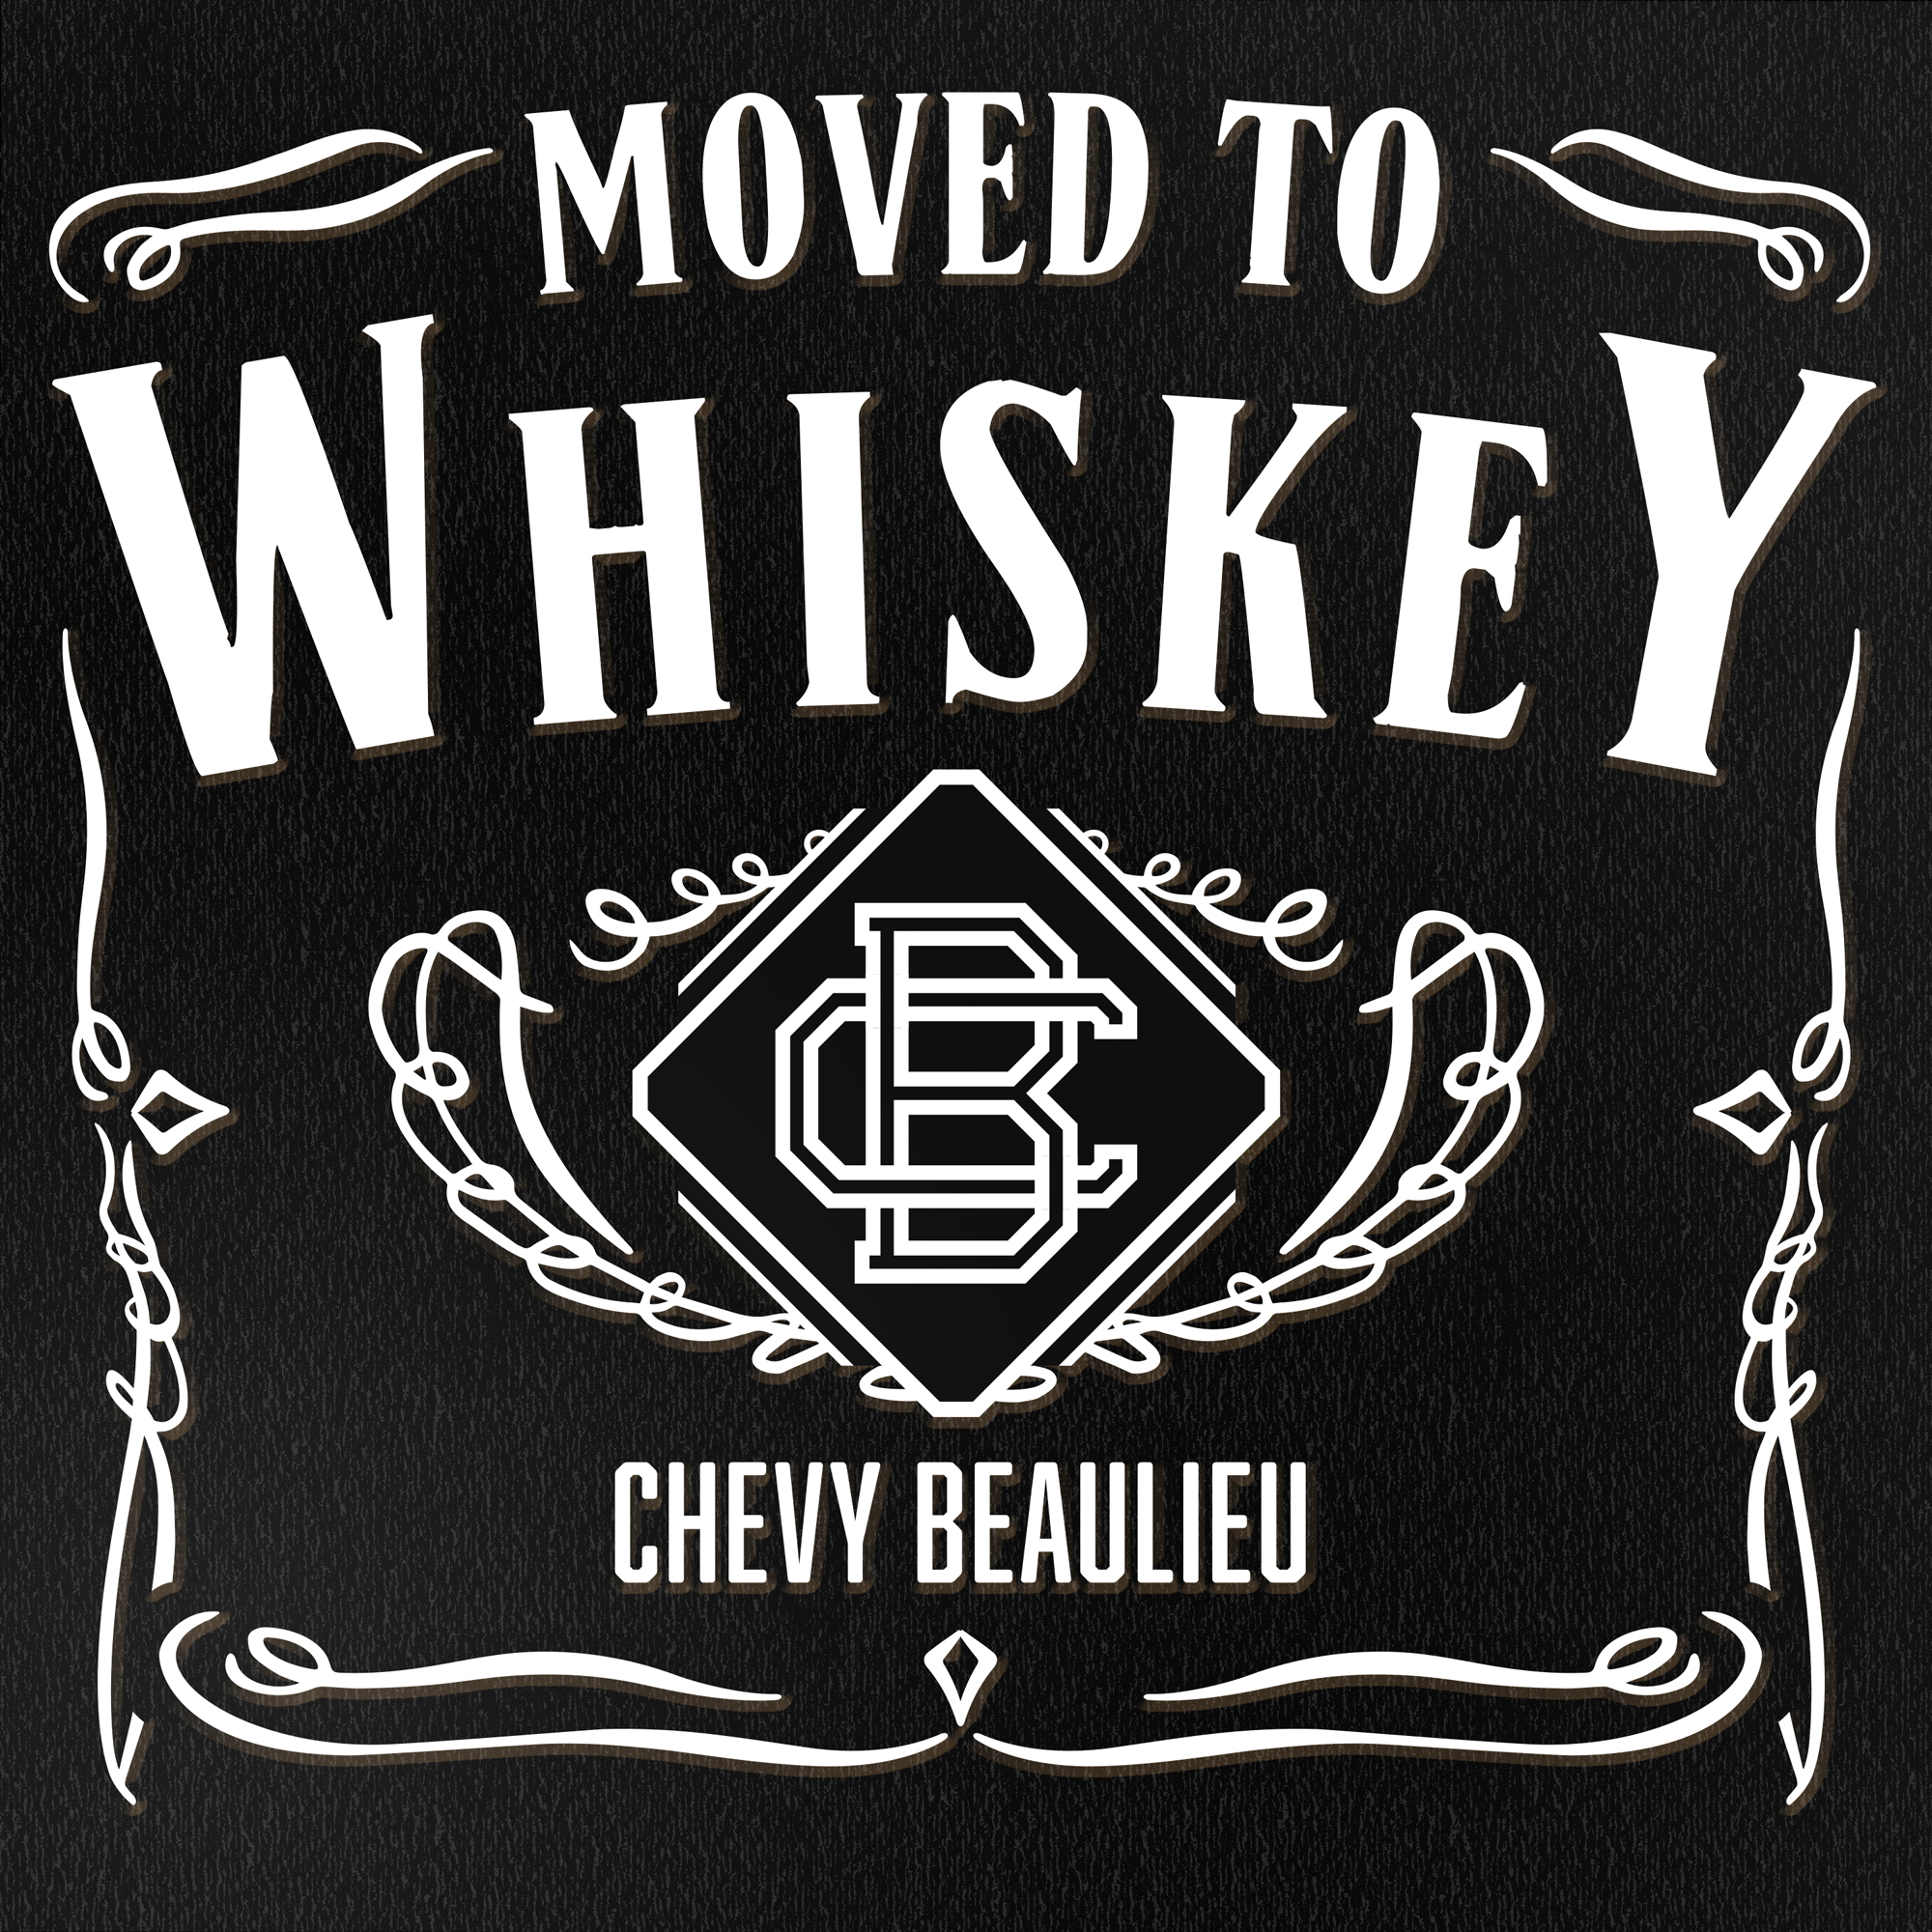 Chevy Beaulieu Music Graphic Design Vancouver